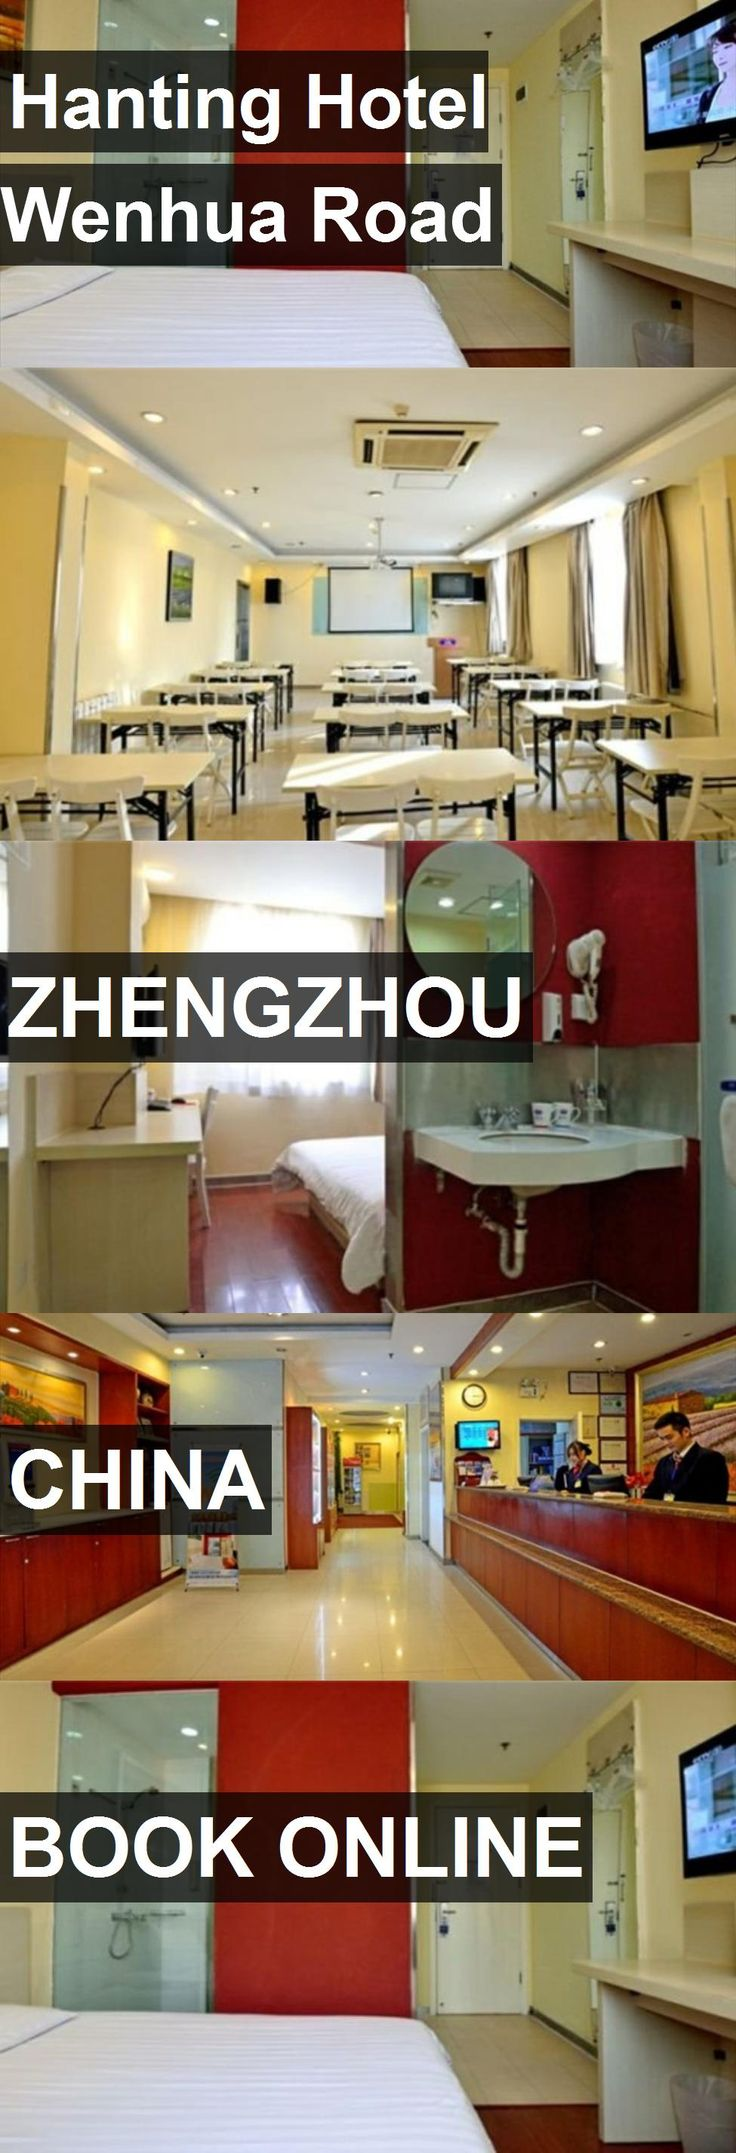 Hanting Hotel Wenhua Road in Zhengzhou, China. For more information, photos, reviews and best prices please follow the link. #China #Zhengzhou #travel #vacation #hotel